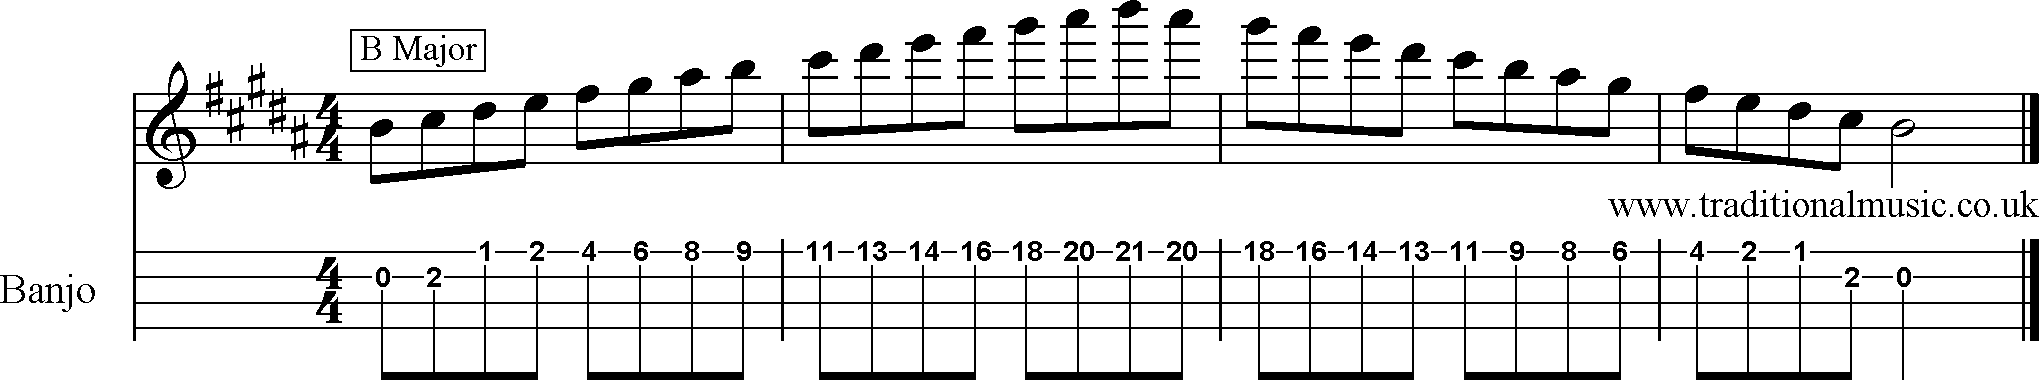 Banjo Scales Tab submited images.